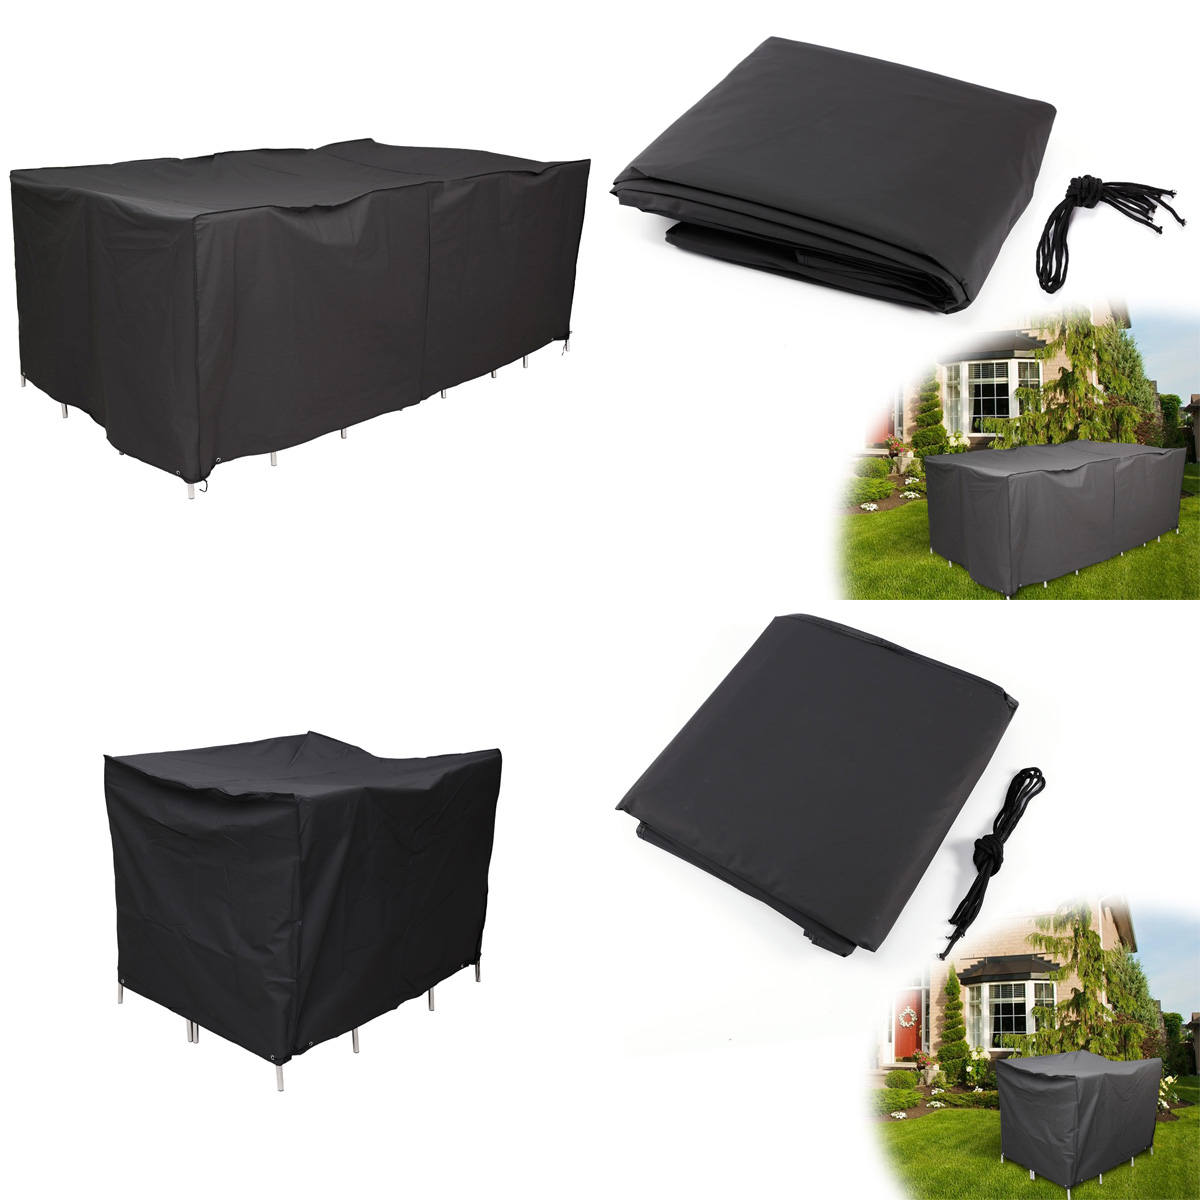 GARDEN PATIO FURNITURE COVER WATERPROOF TABLE CHAIR SHELTER 2 size